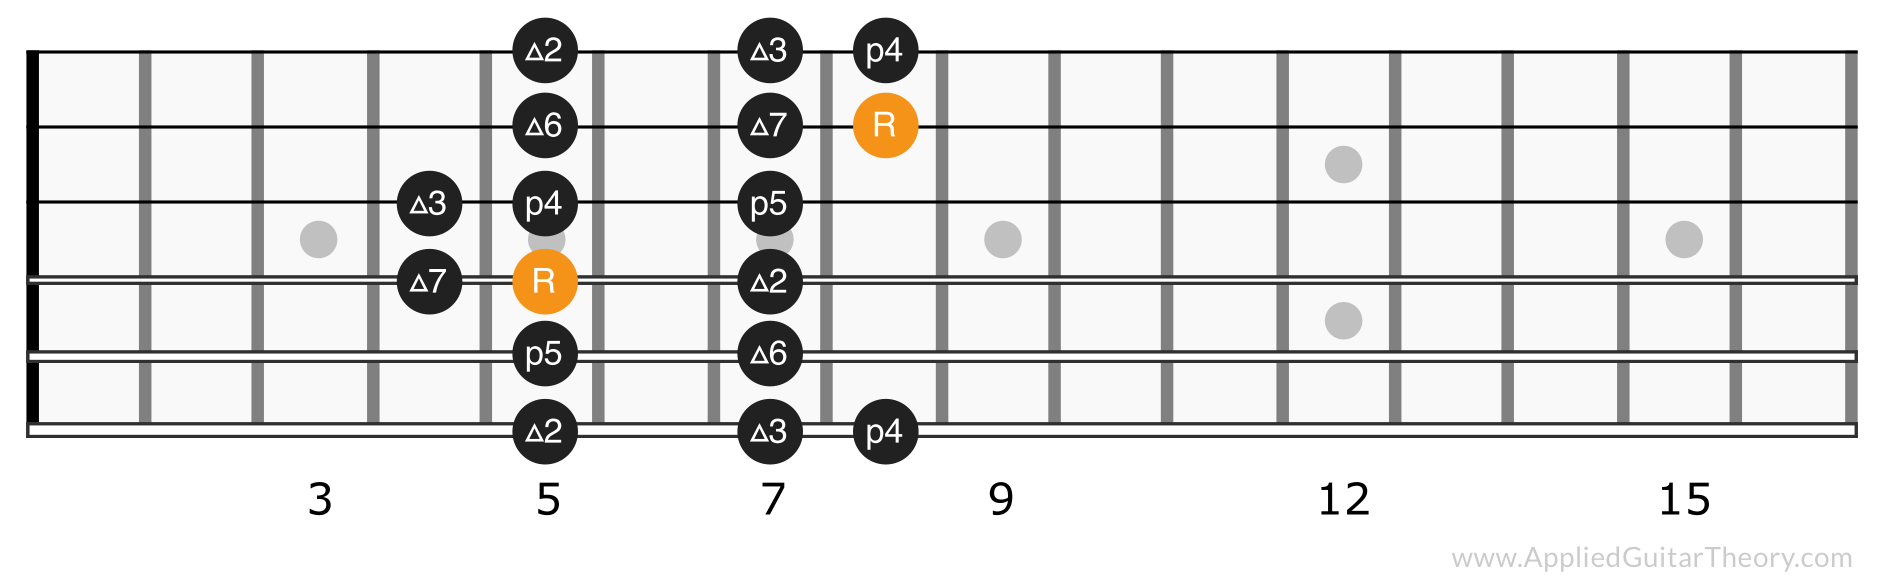 Major scale position 2